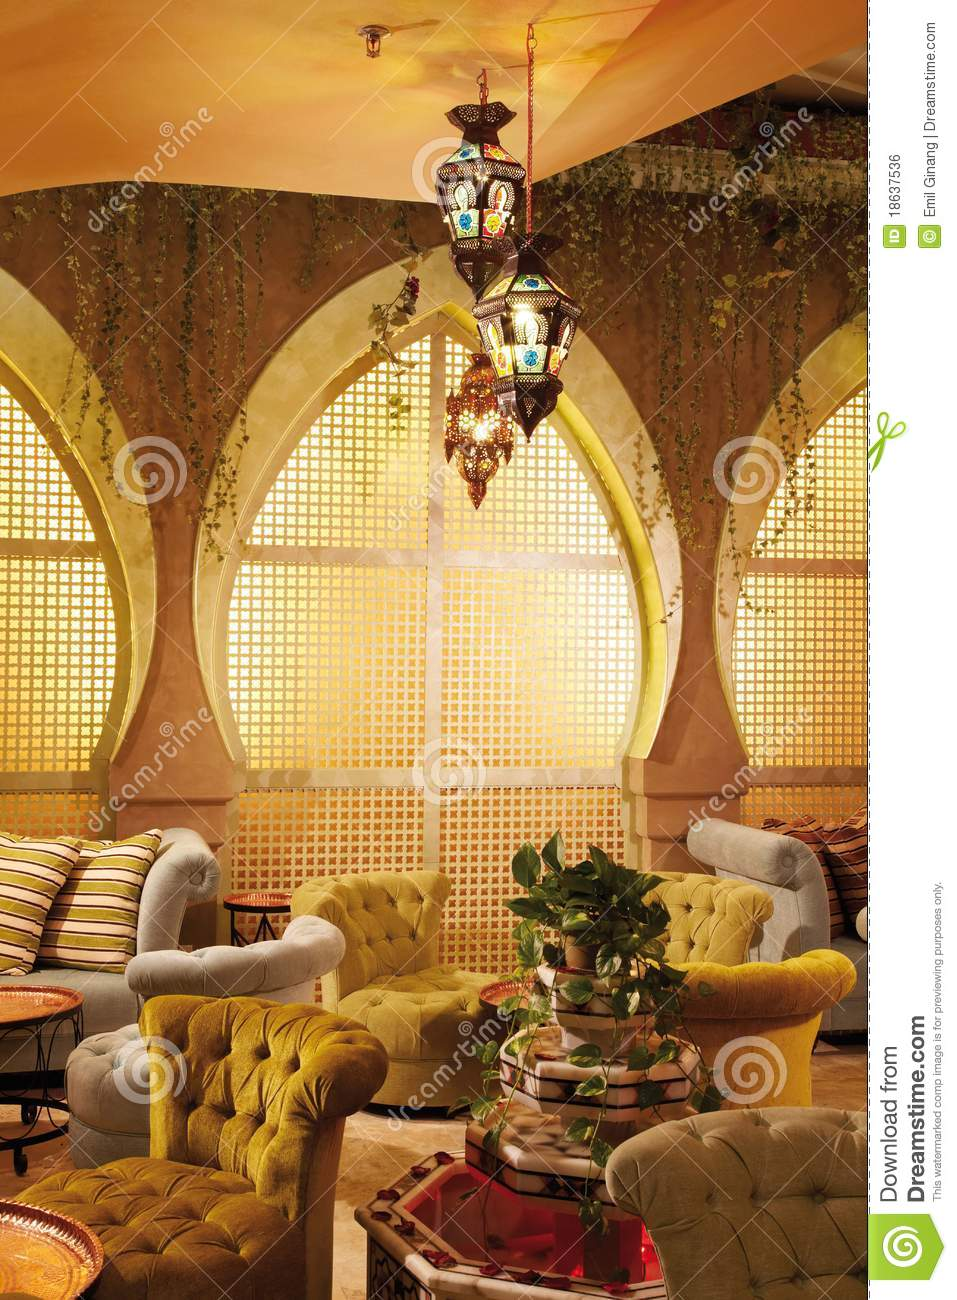 U Couch Arabic Interior Stock Photo. Image Of Living, Decorations